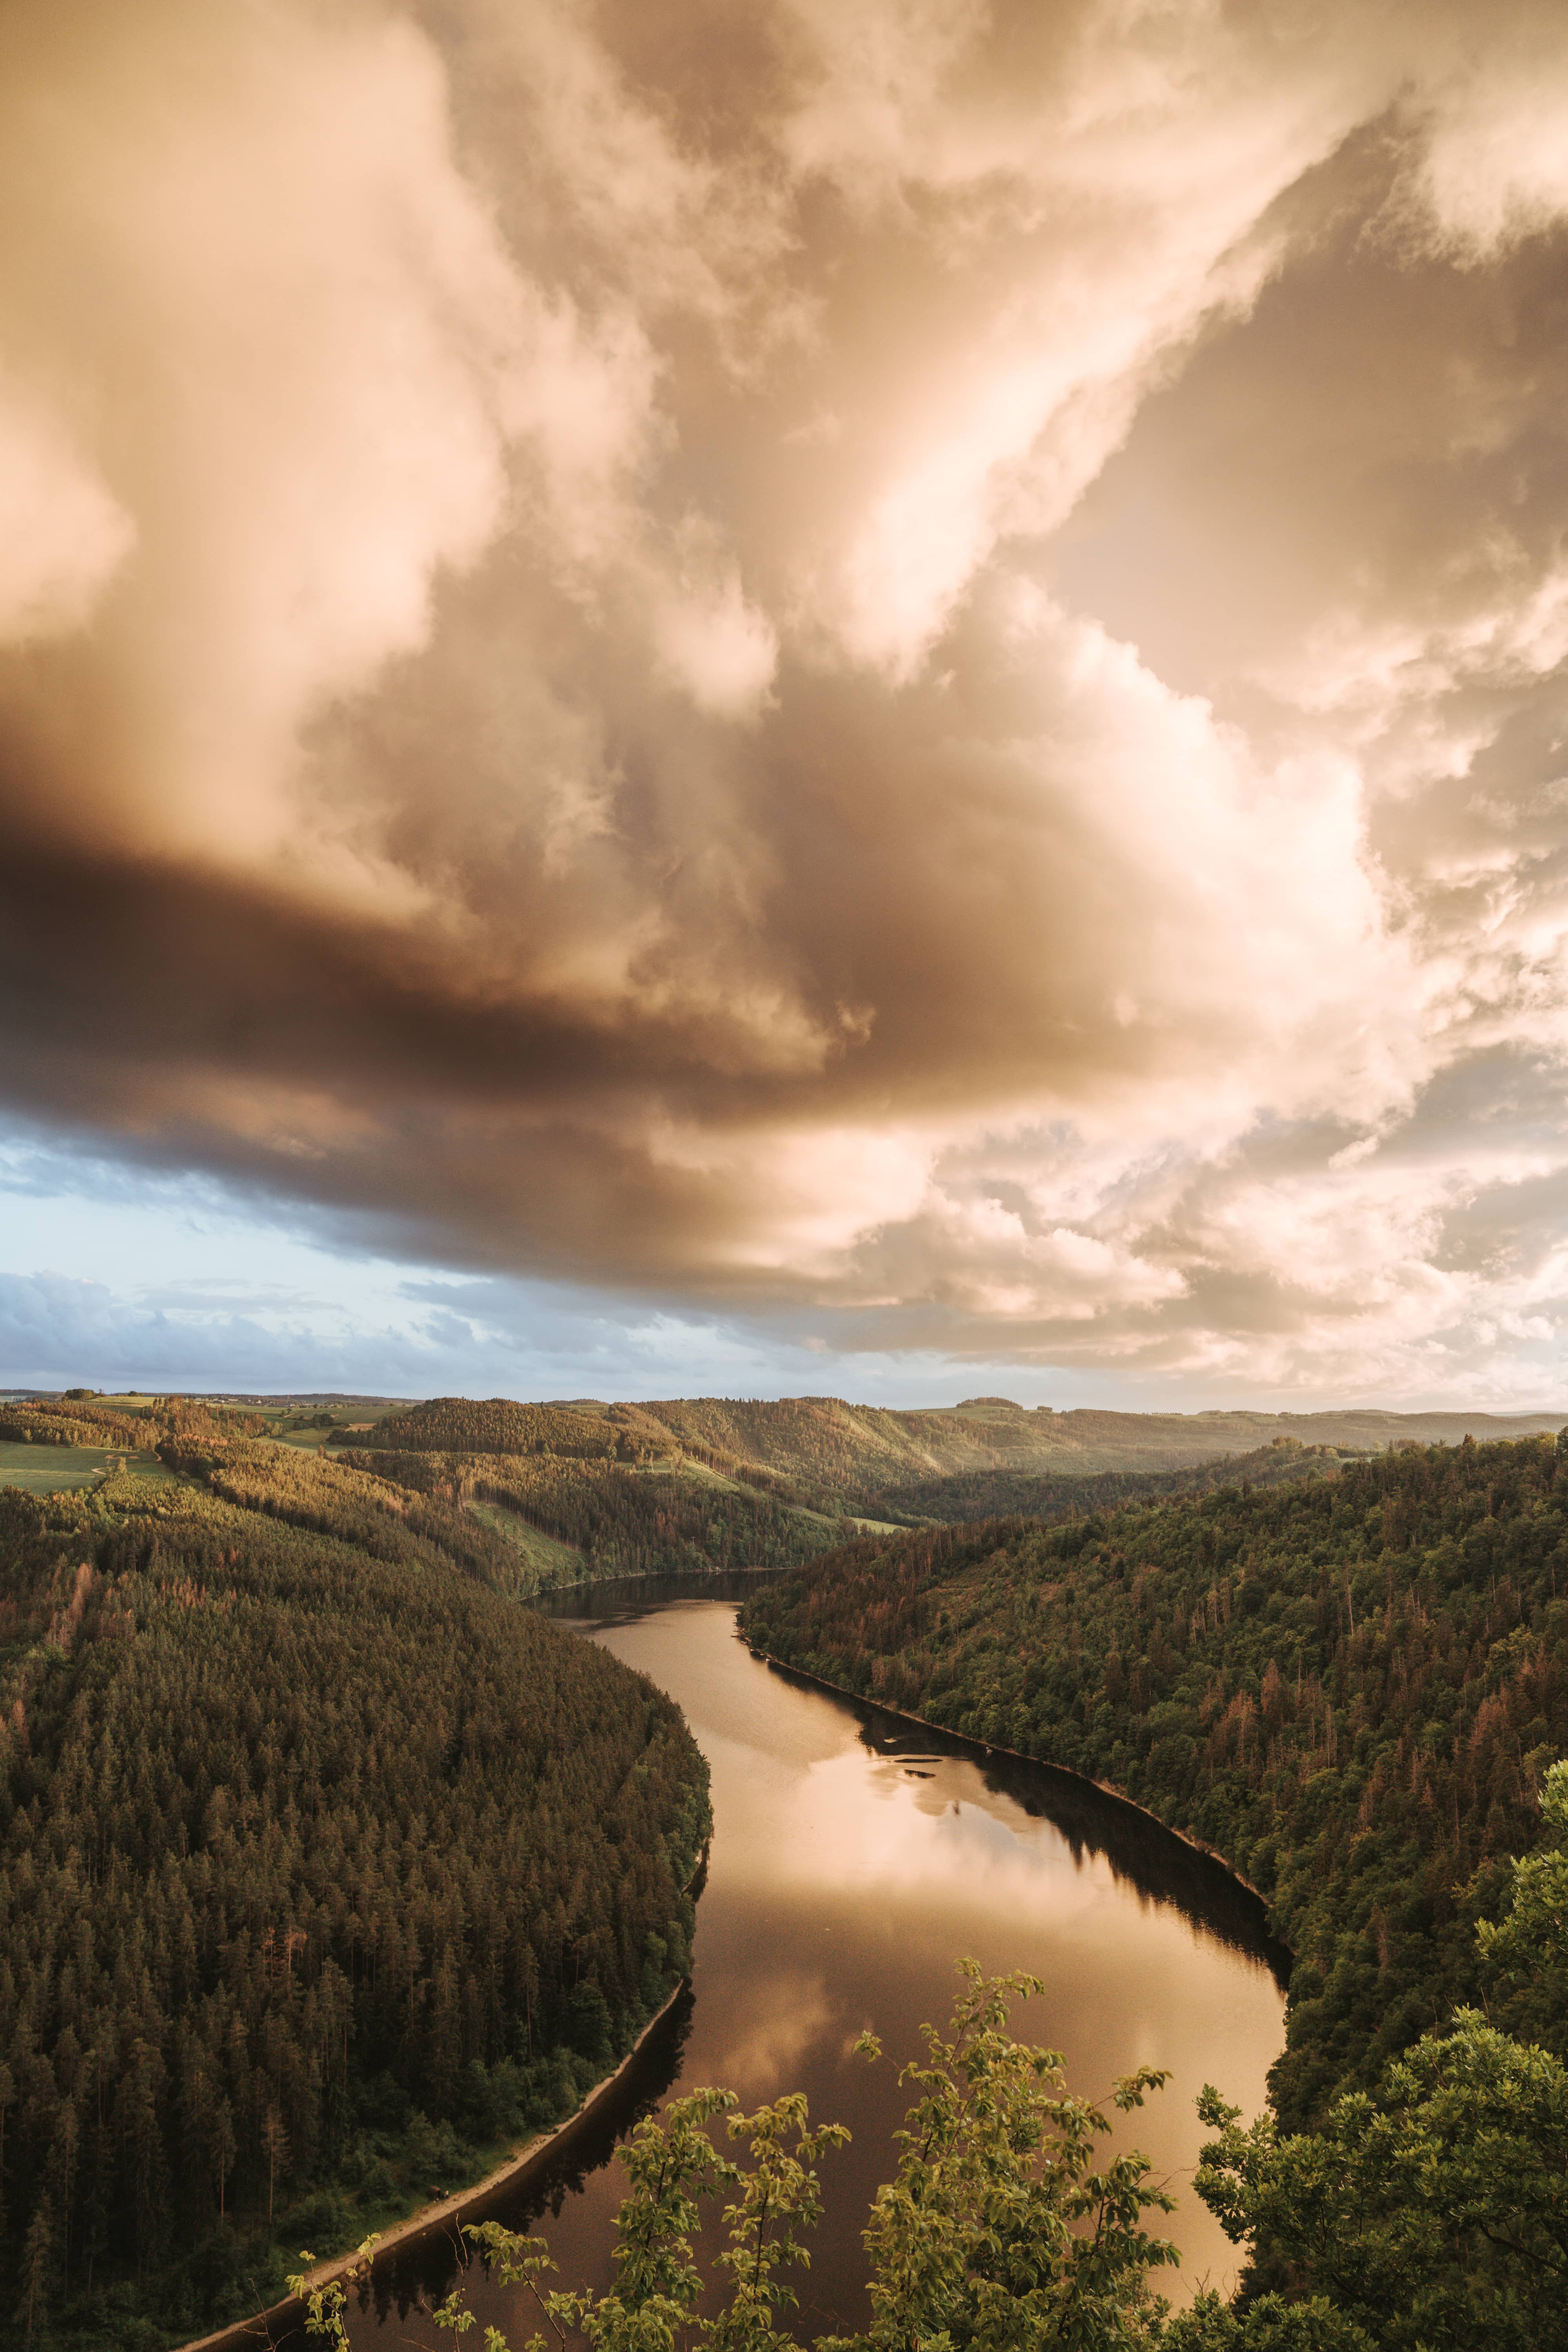 A river surrounded by forest while the sun sets